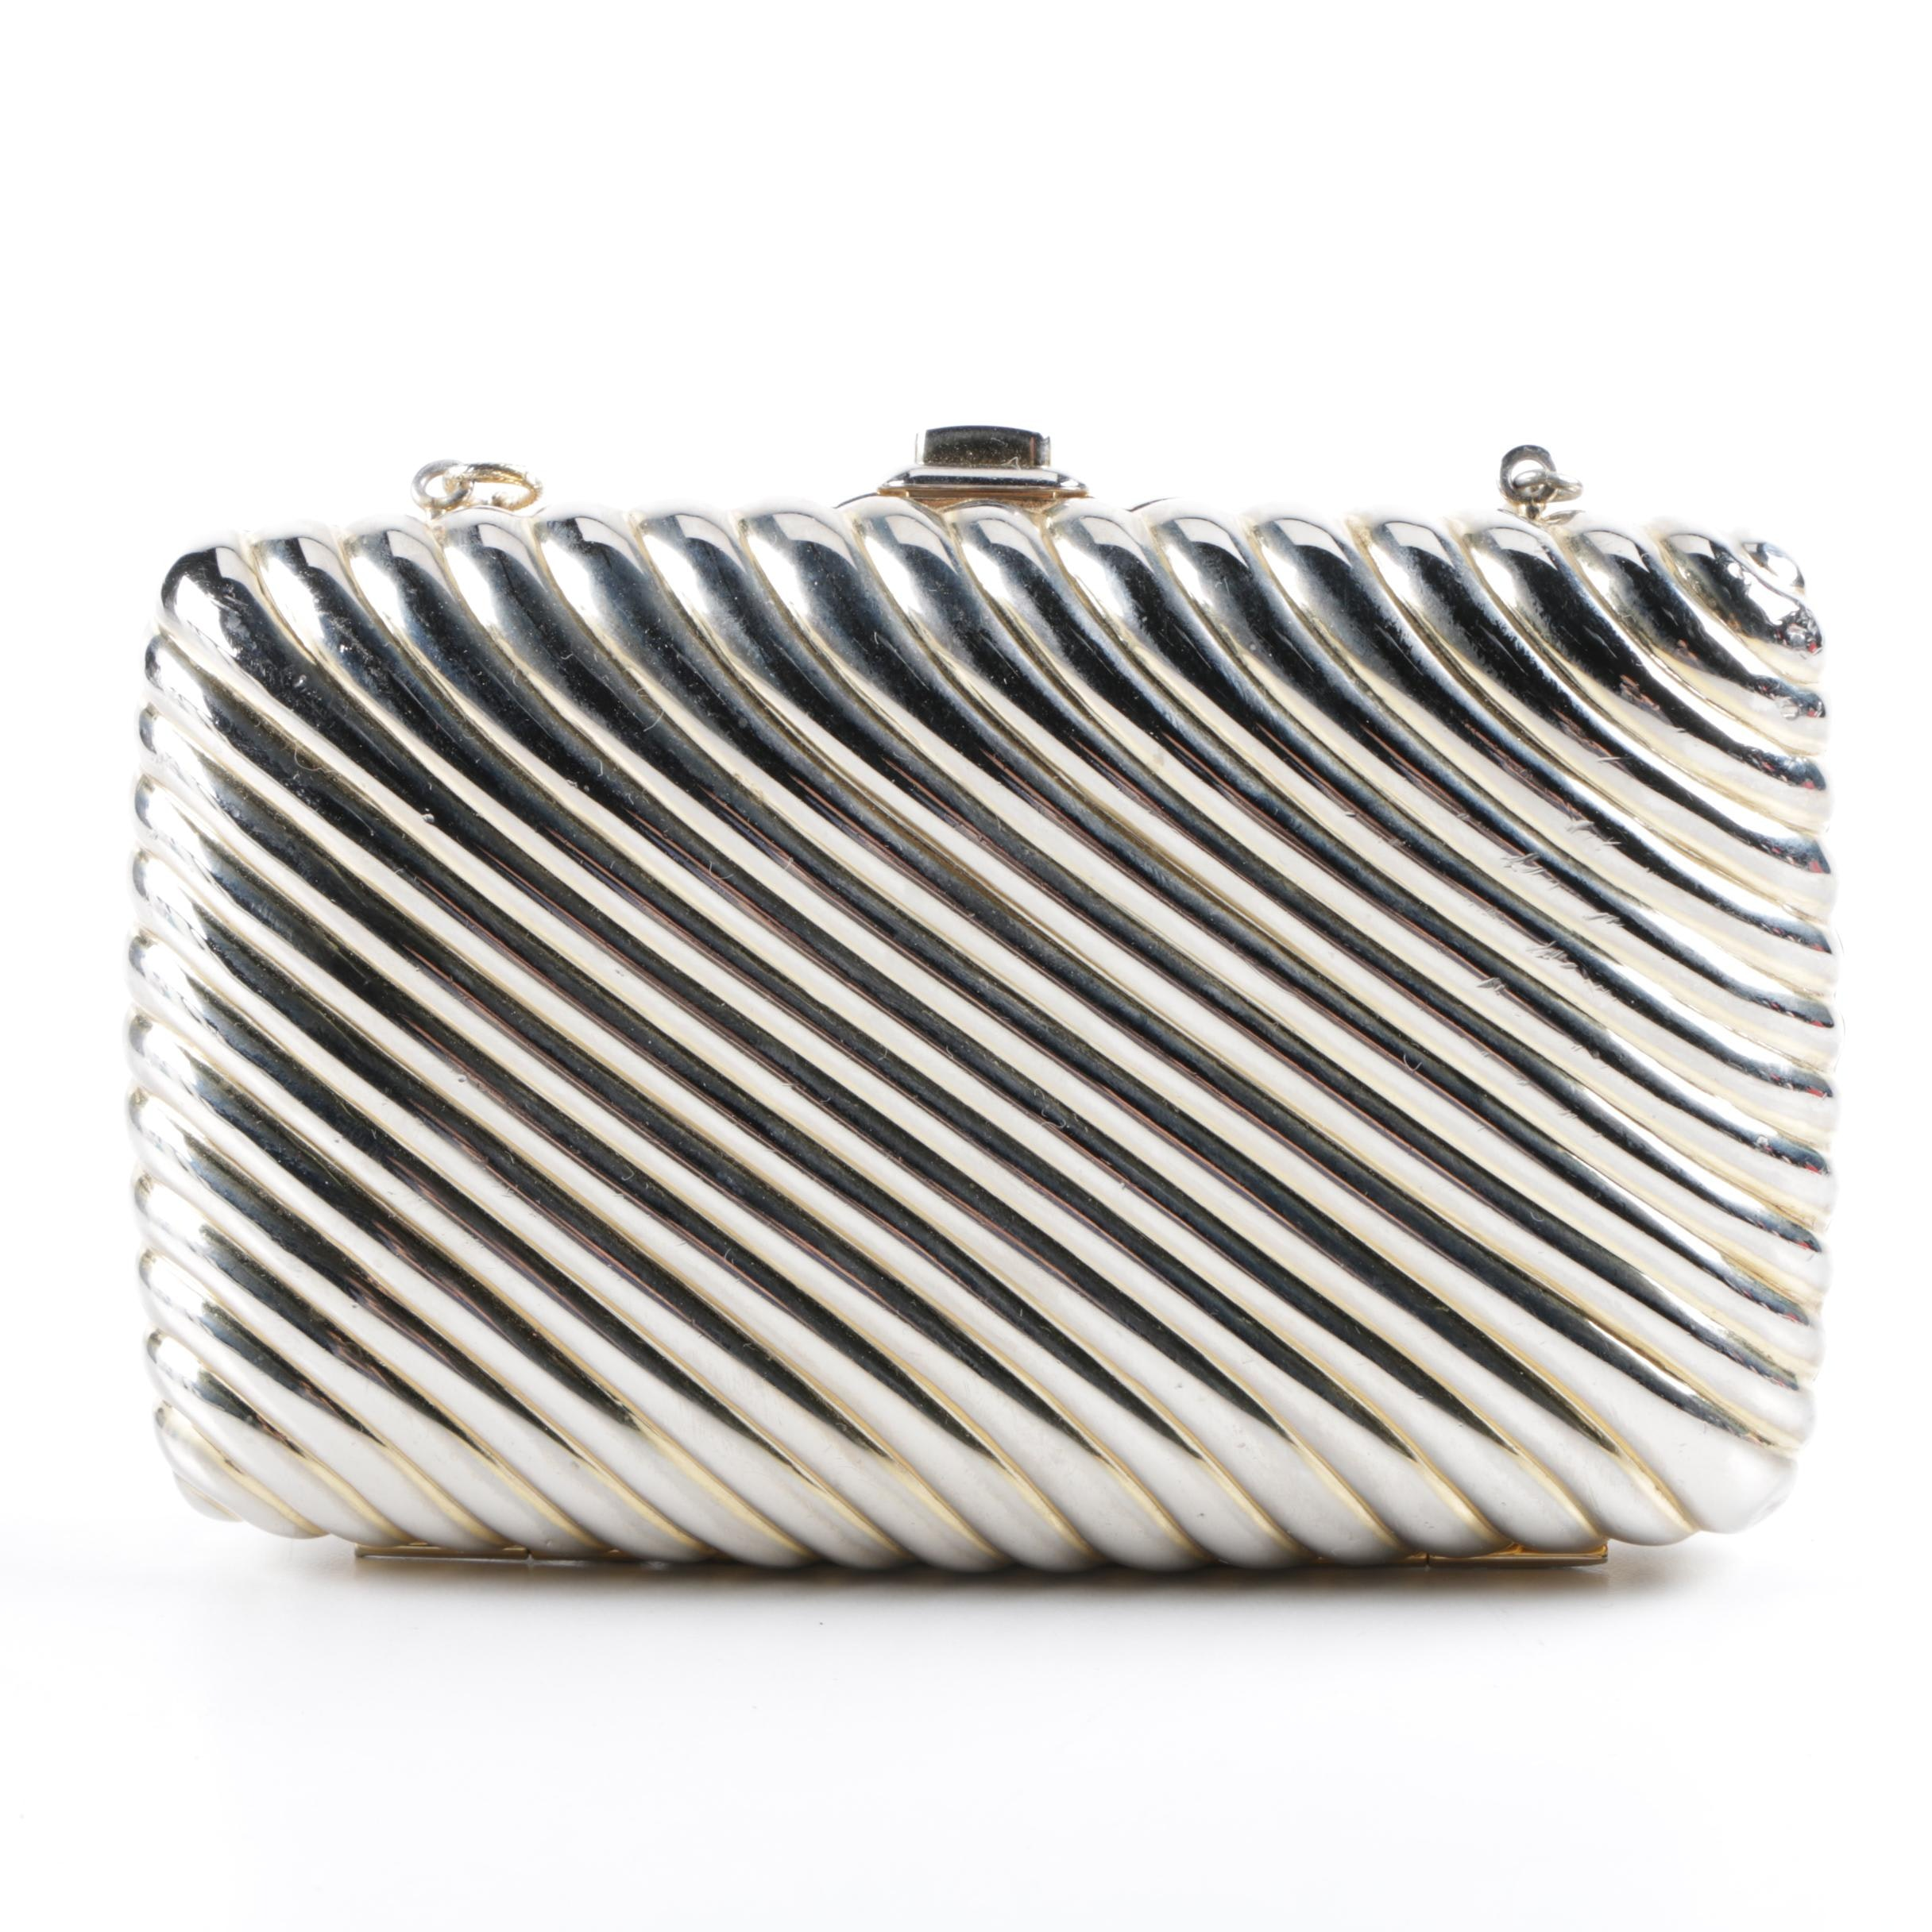 Judith Leiber Metallic Evening Bag